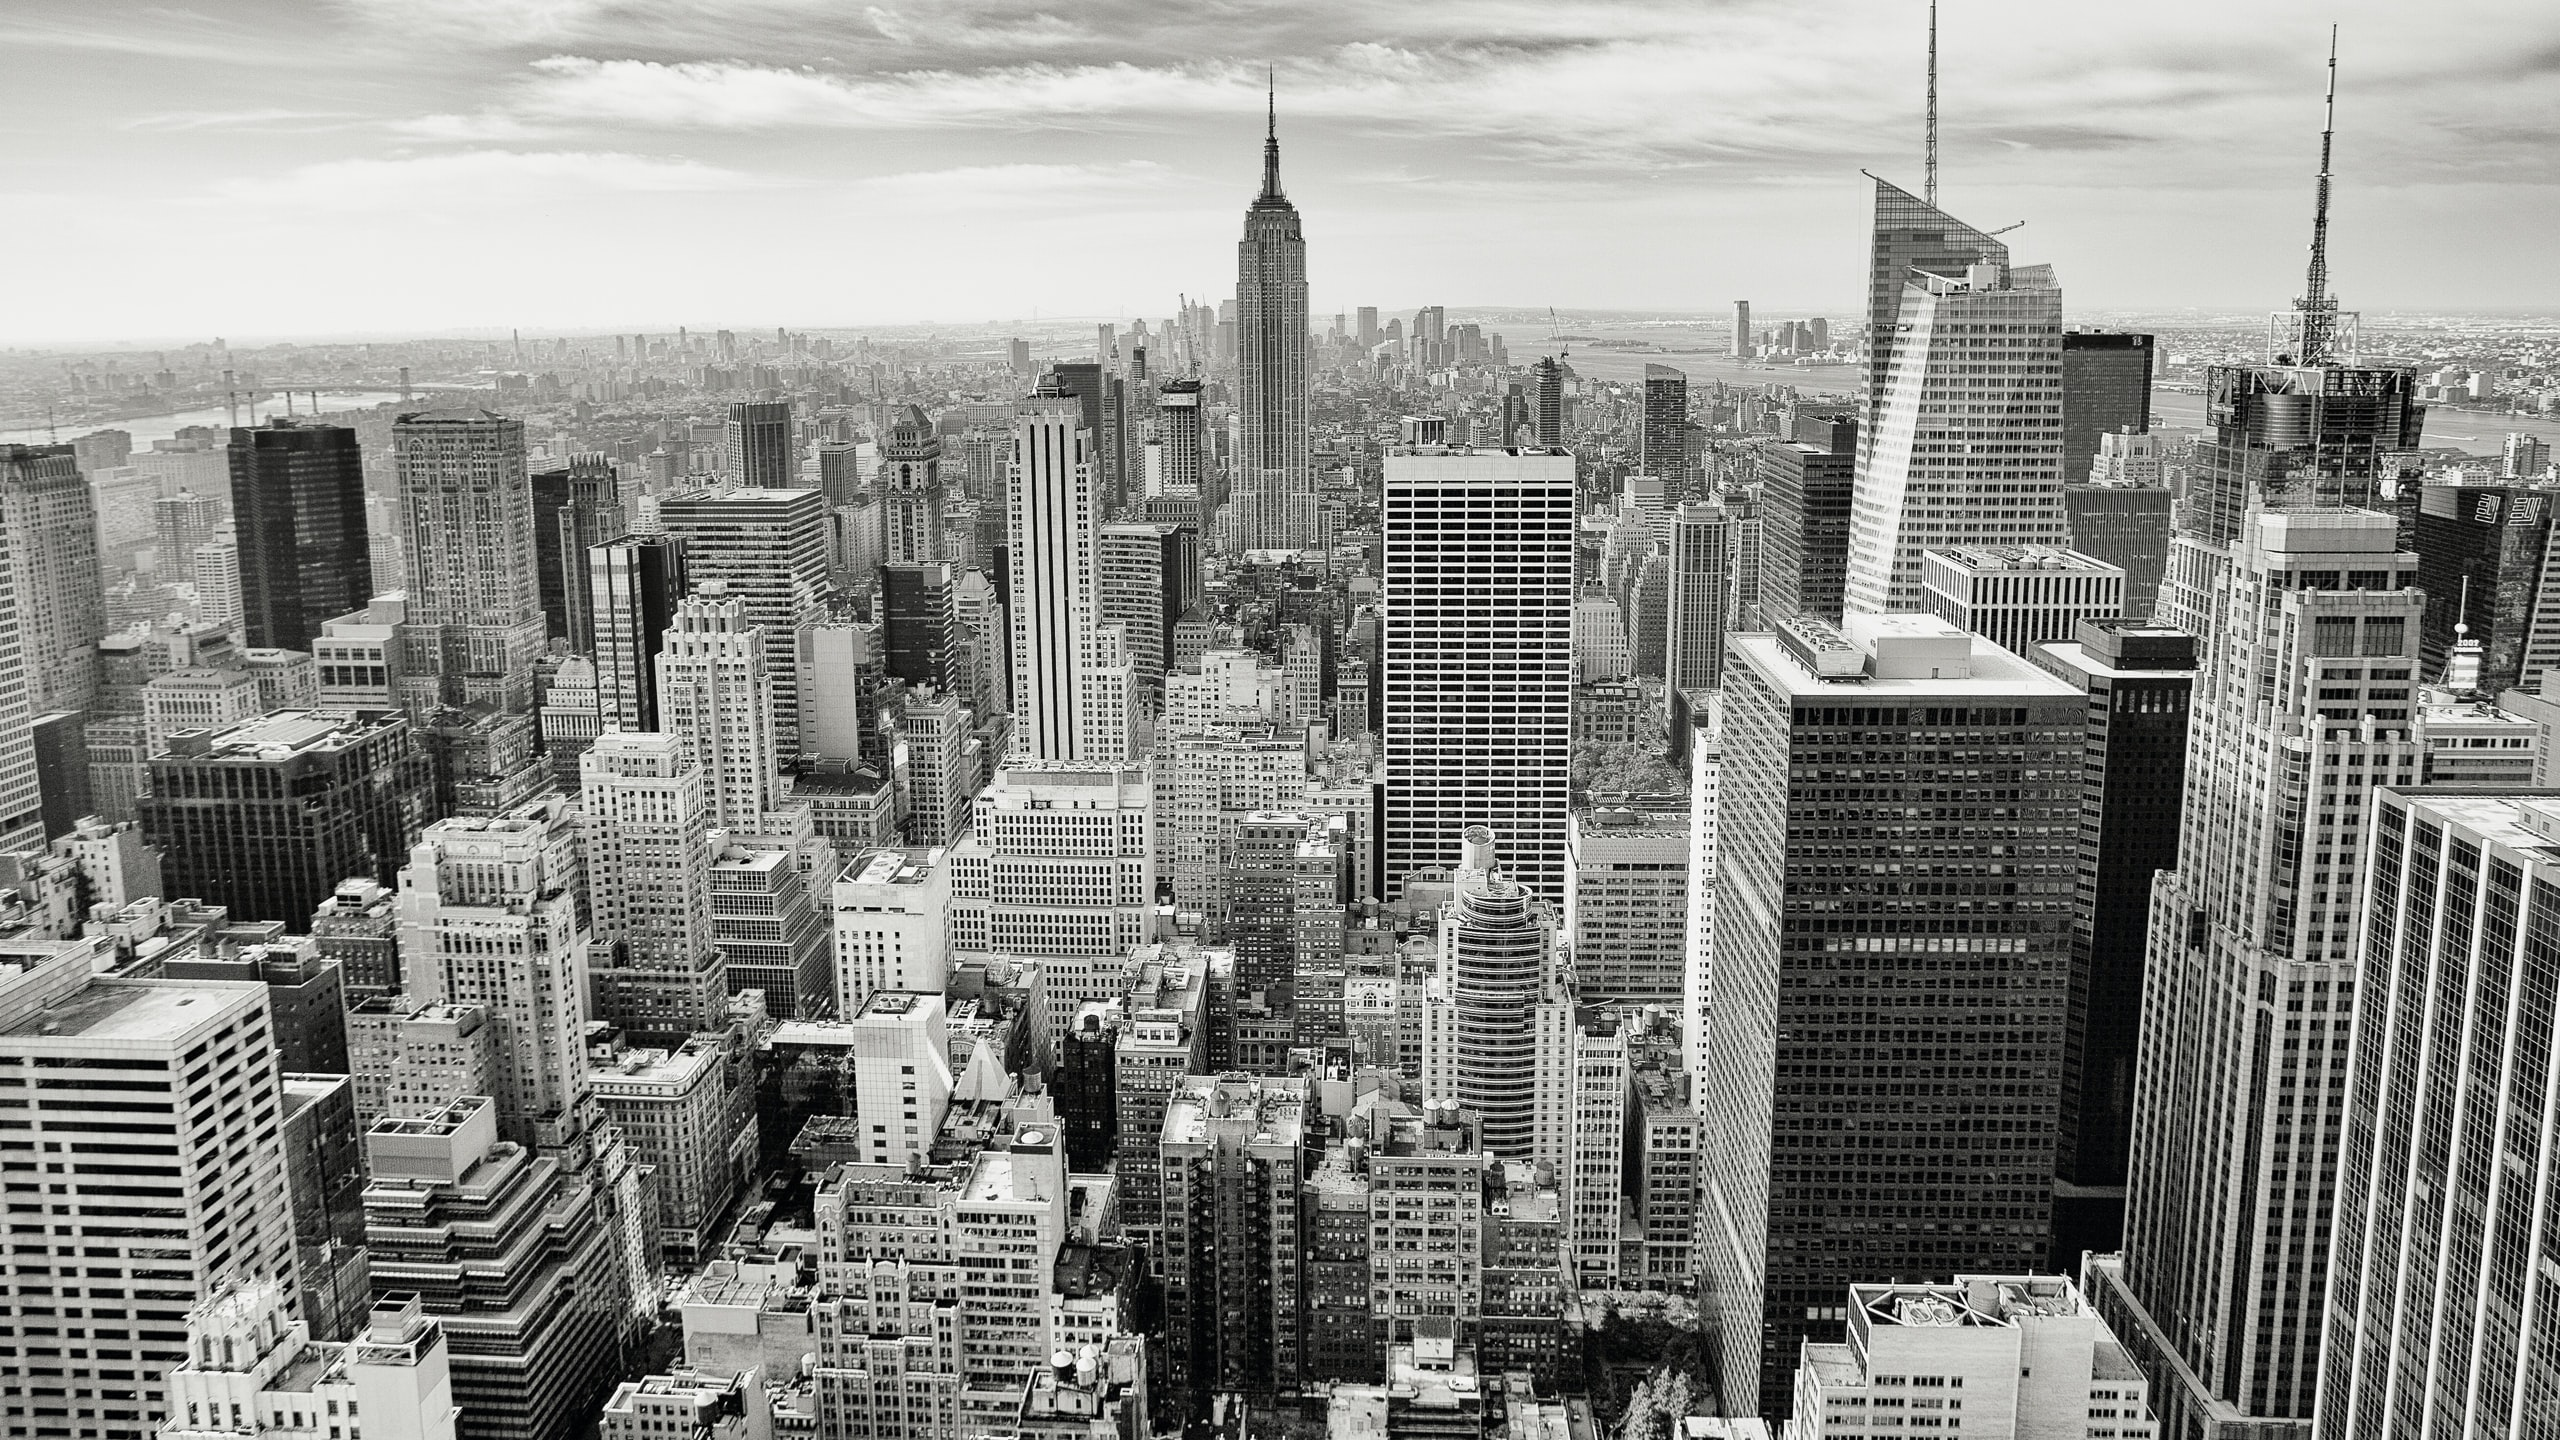 Black and white photo of the downtown New York City skyline from Top of the Rock